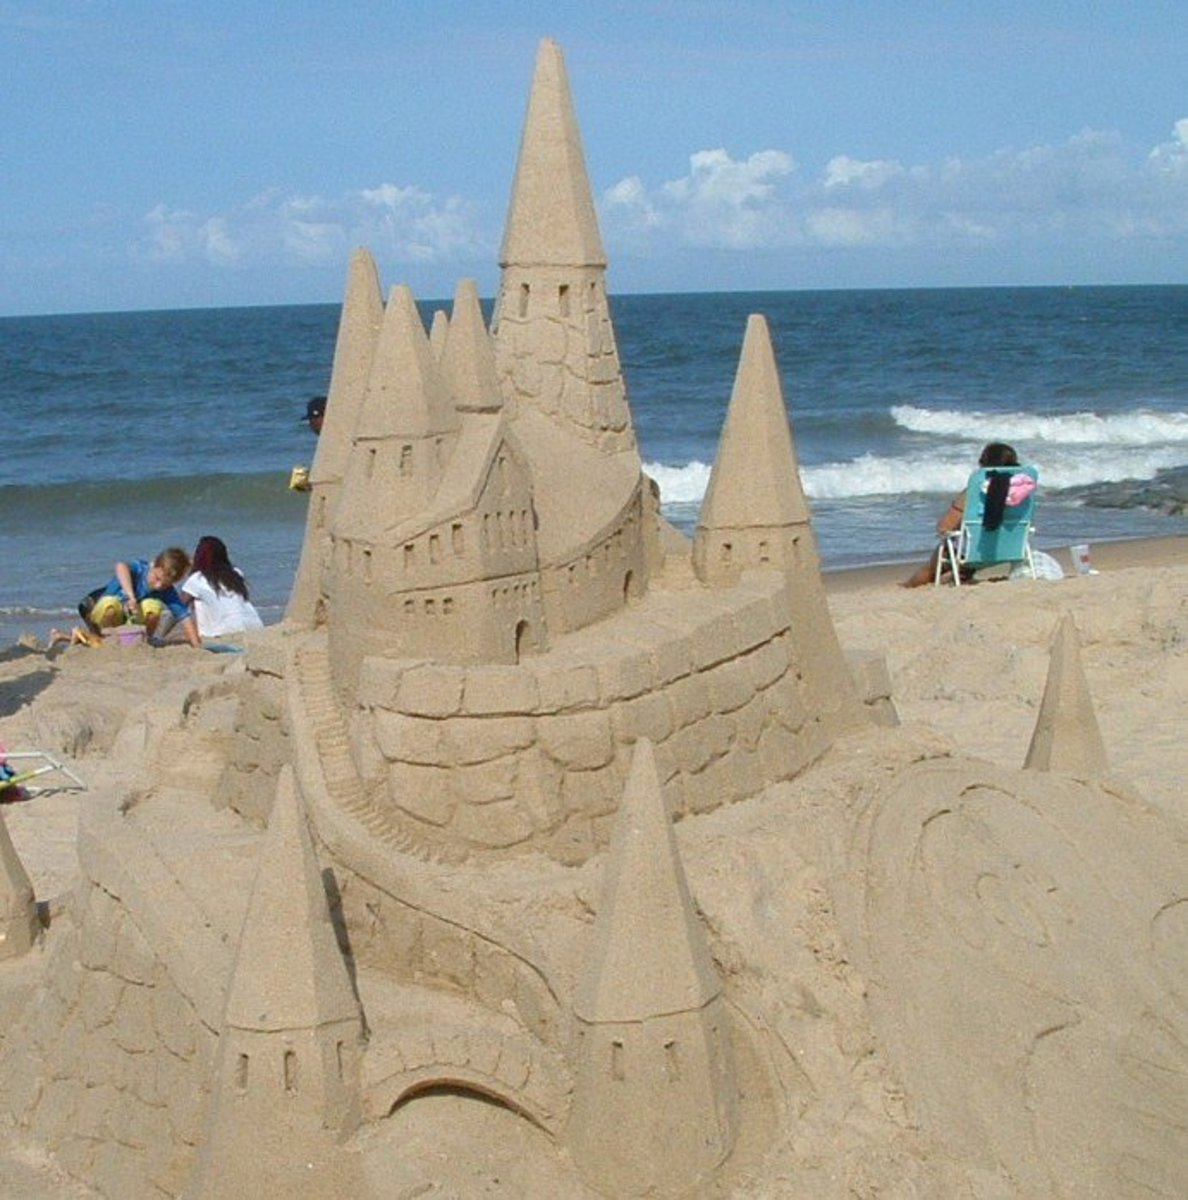 How to Build Sand Castles & Sculptures With Kids